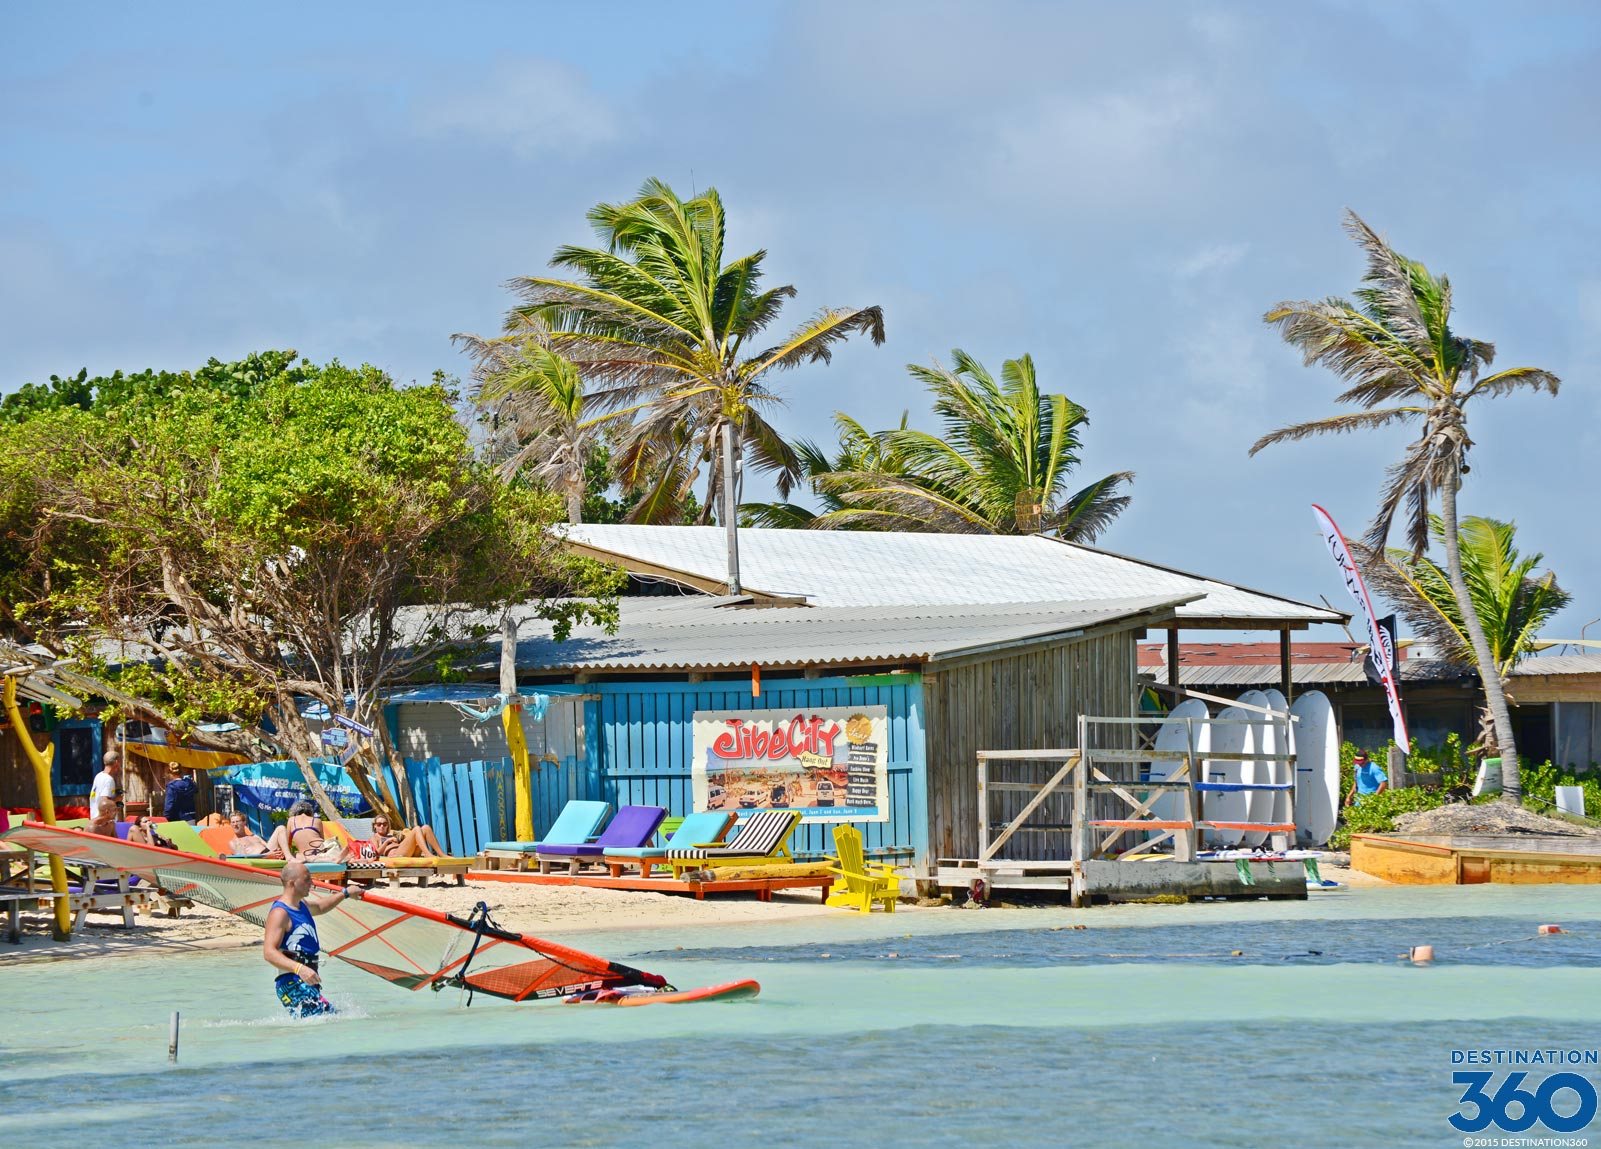 Jibe City Bonaire Virtual Tour